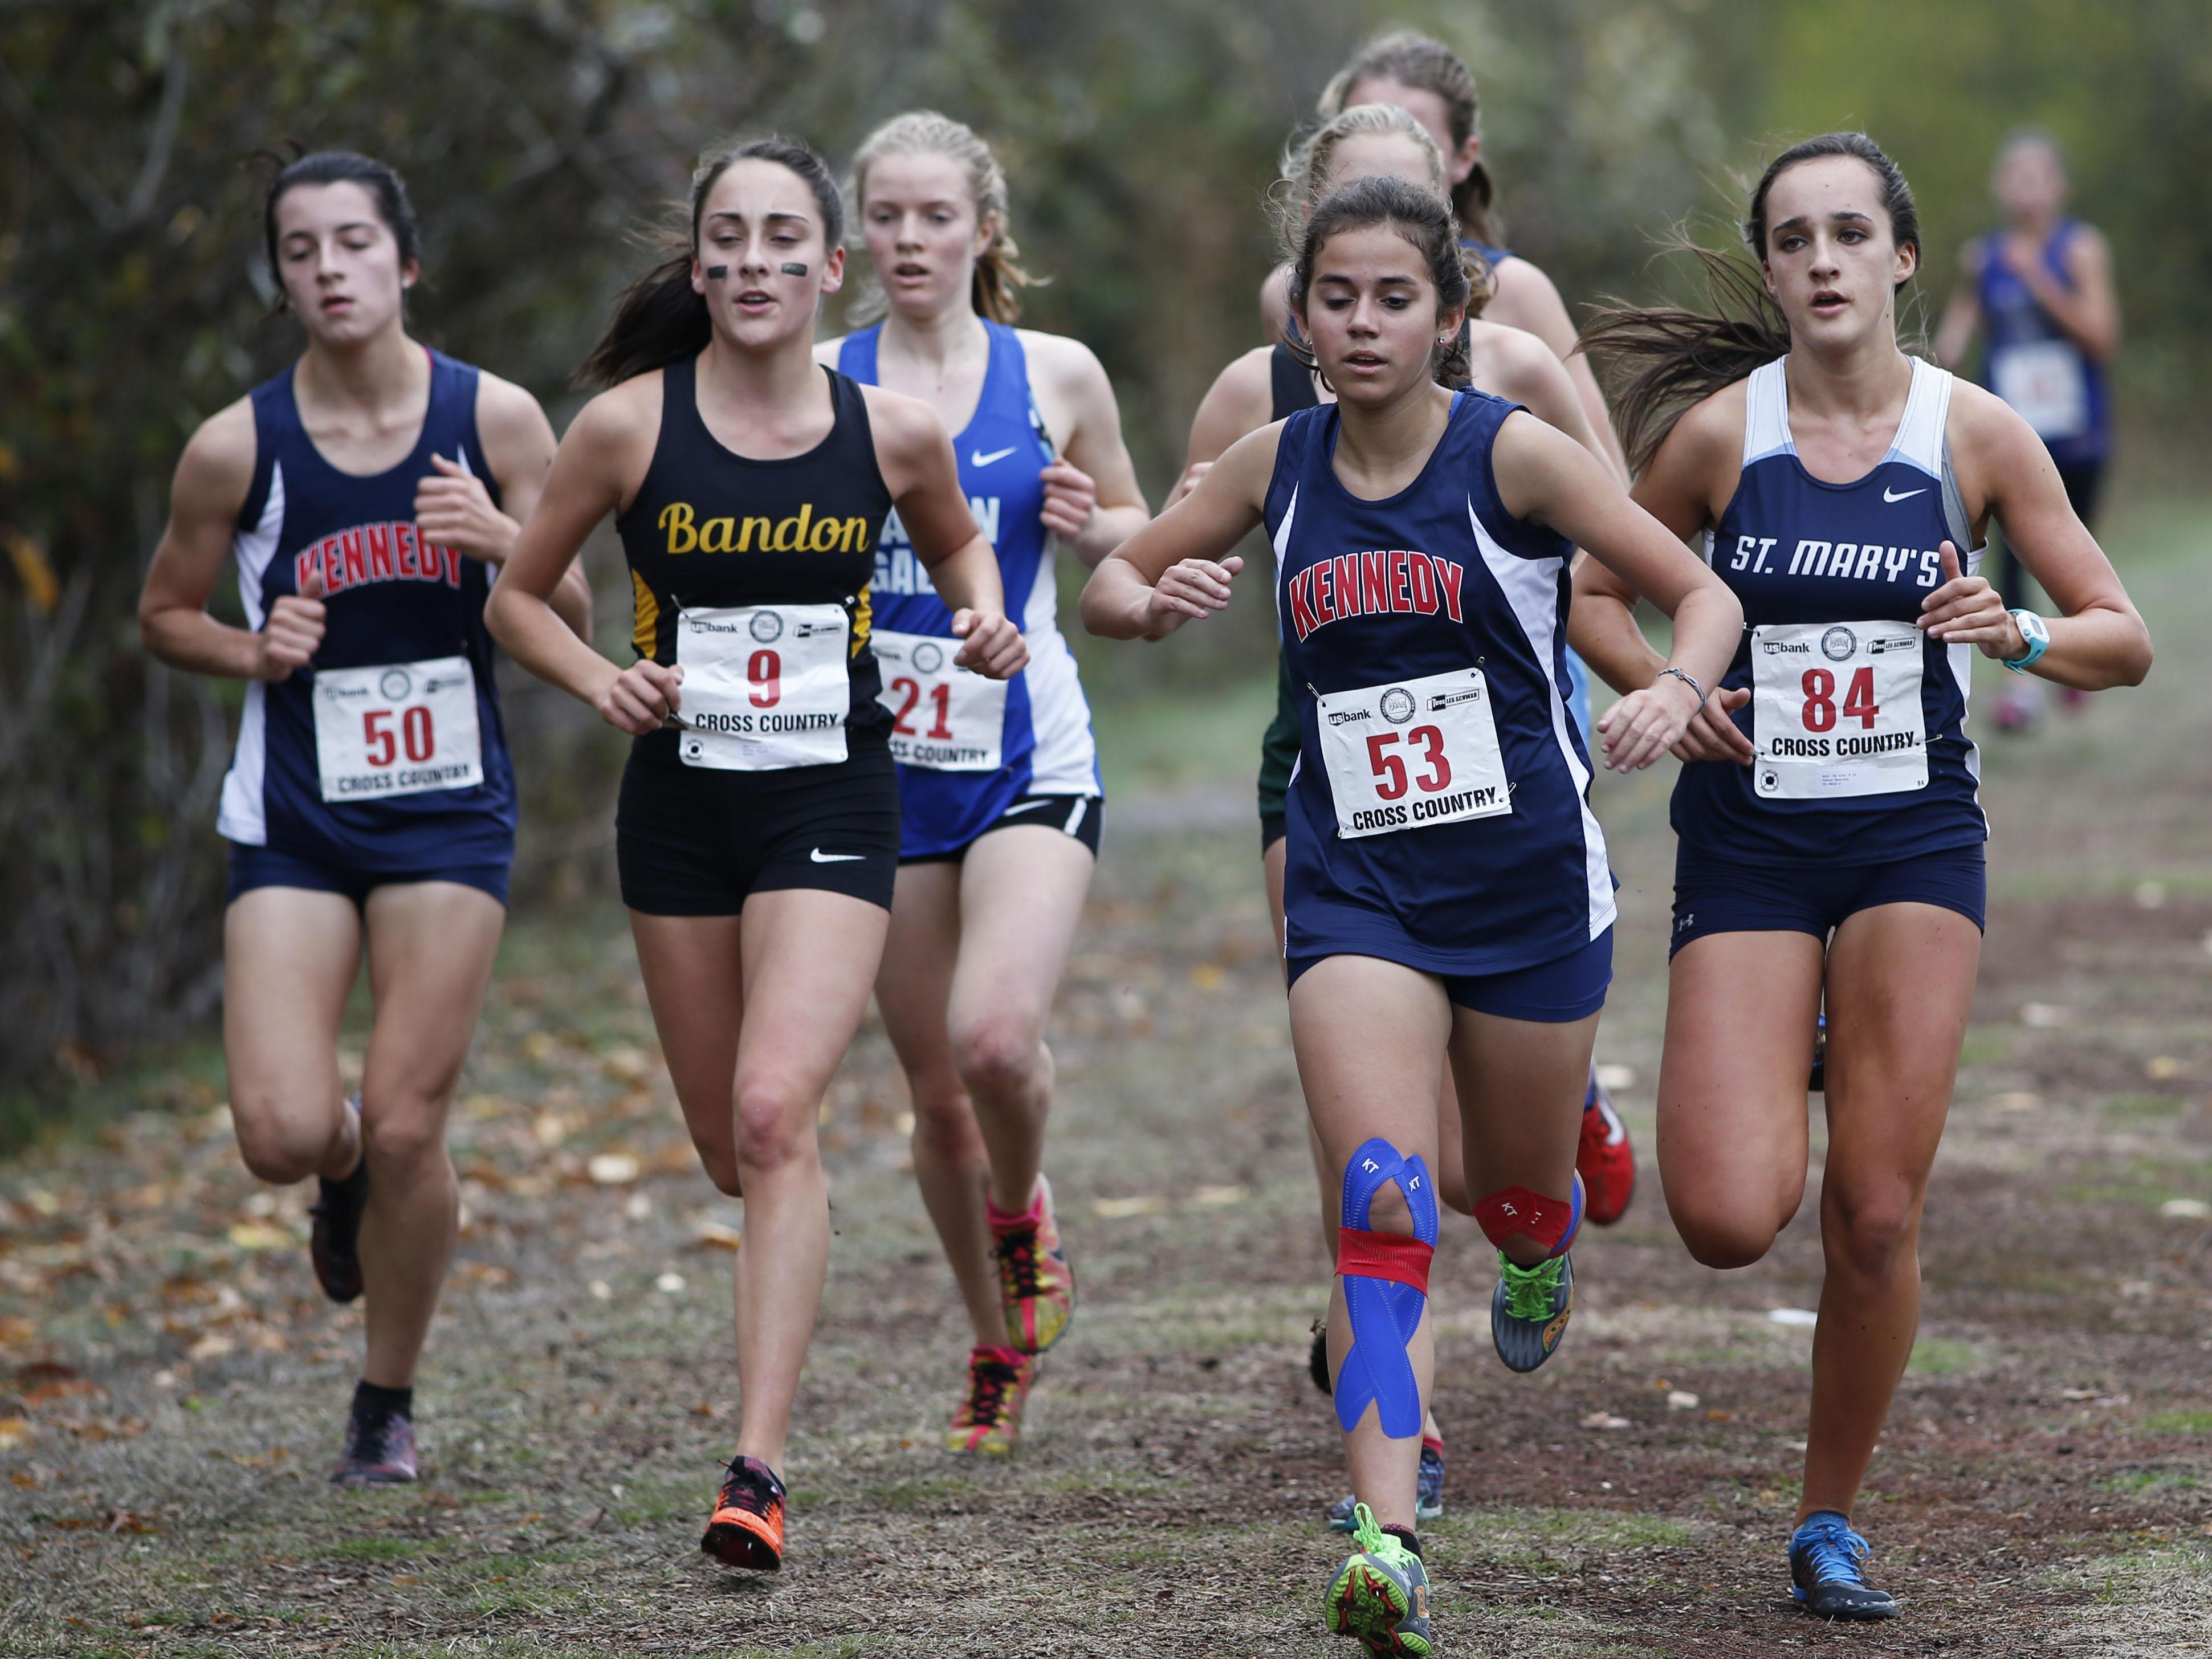 Kennedy's Alejandra Lopez, front right, and Kaylin Cantu, left, competes in the 3A/2/1A state cross country championships at Lane Community College on Saturday, Oct. 31, 2015. (Timothy J. Gonzalez/For the Statesman Journal)